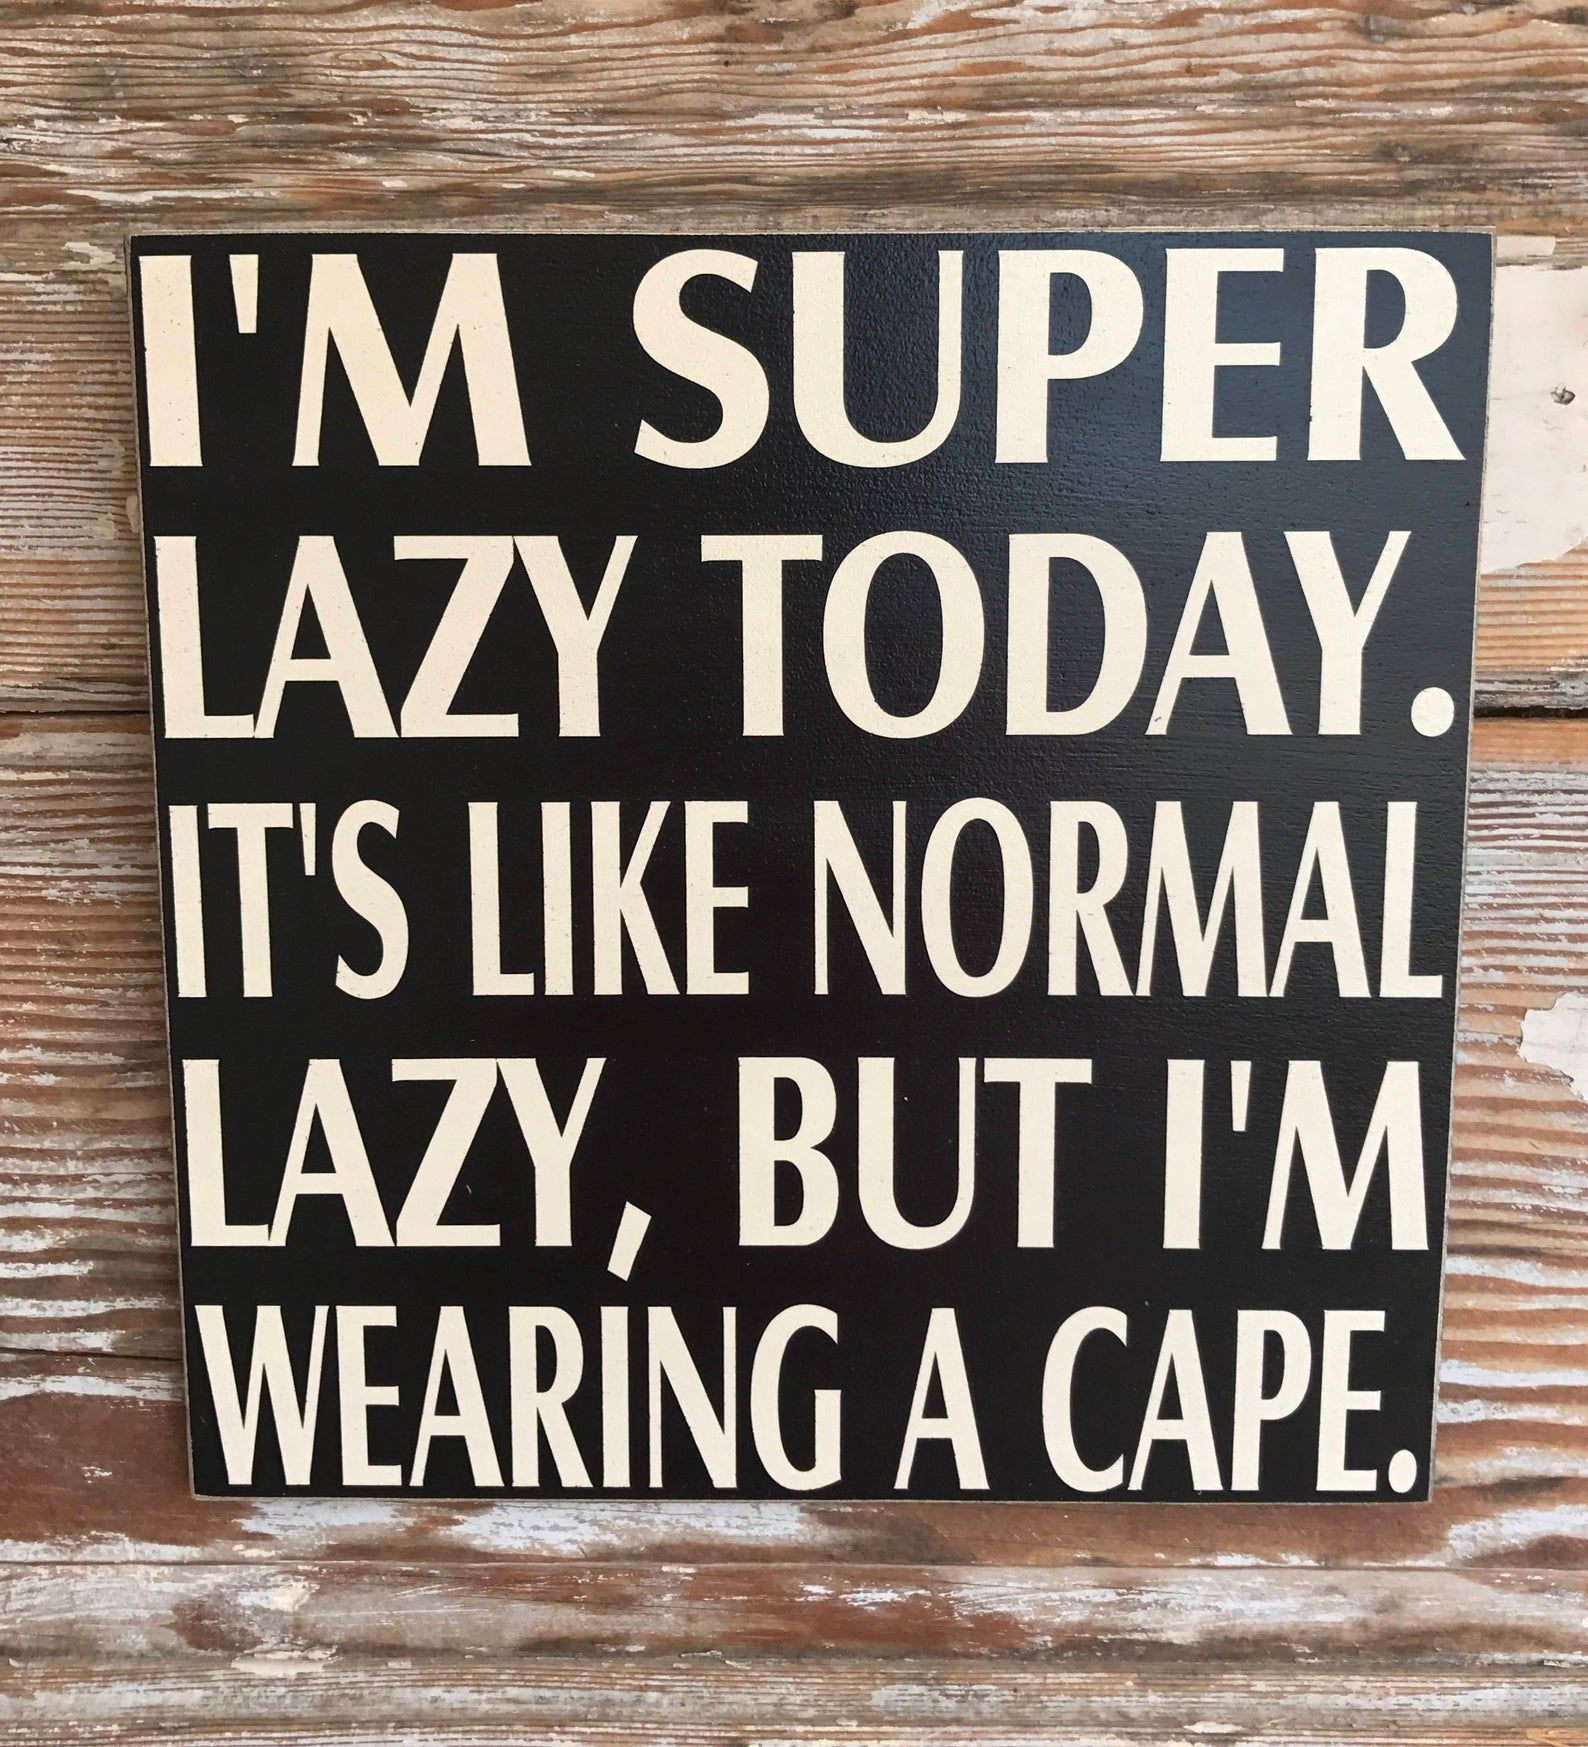 I'm Super Lazy Today. It's Like Normal Lazy, But I'm Wearing A Cape. Wood Sign 12x12 Funny Sign #pooloutfitideas